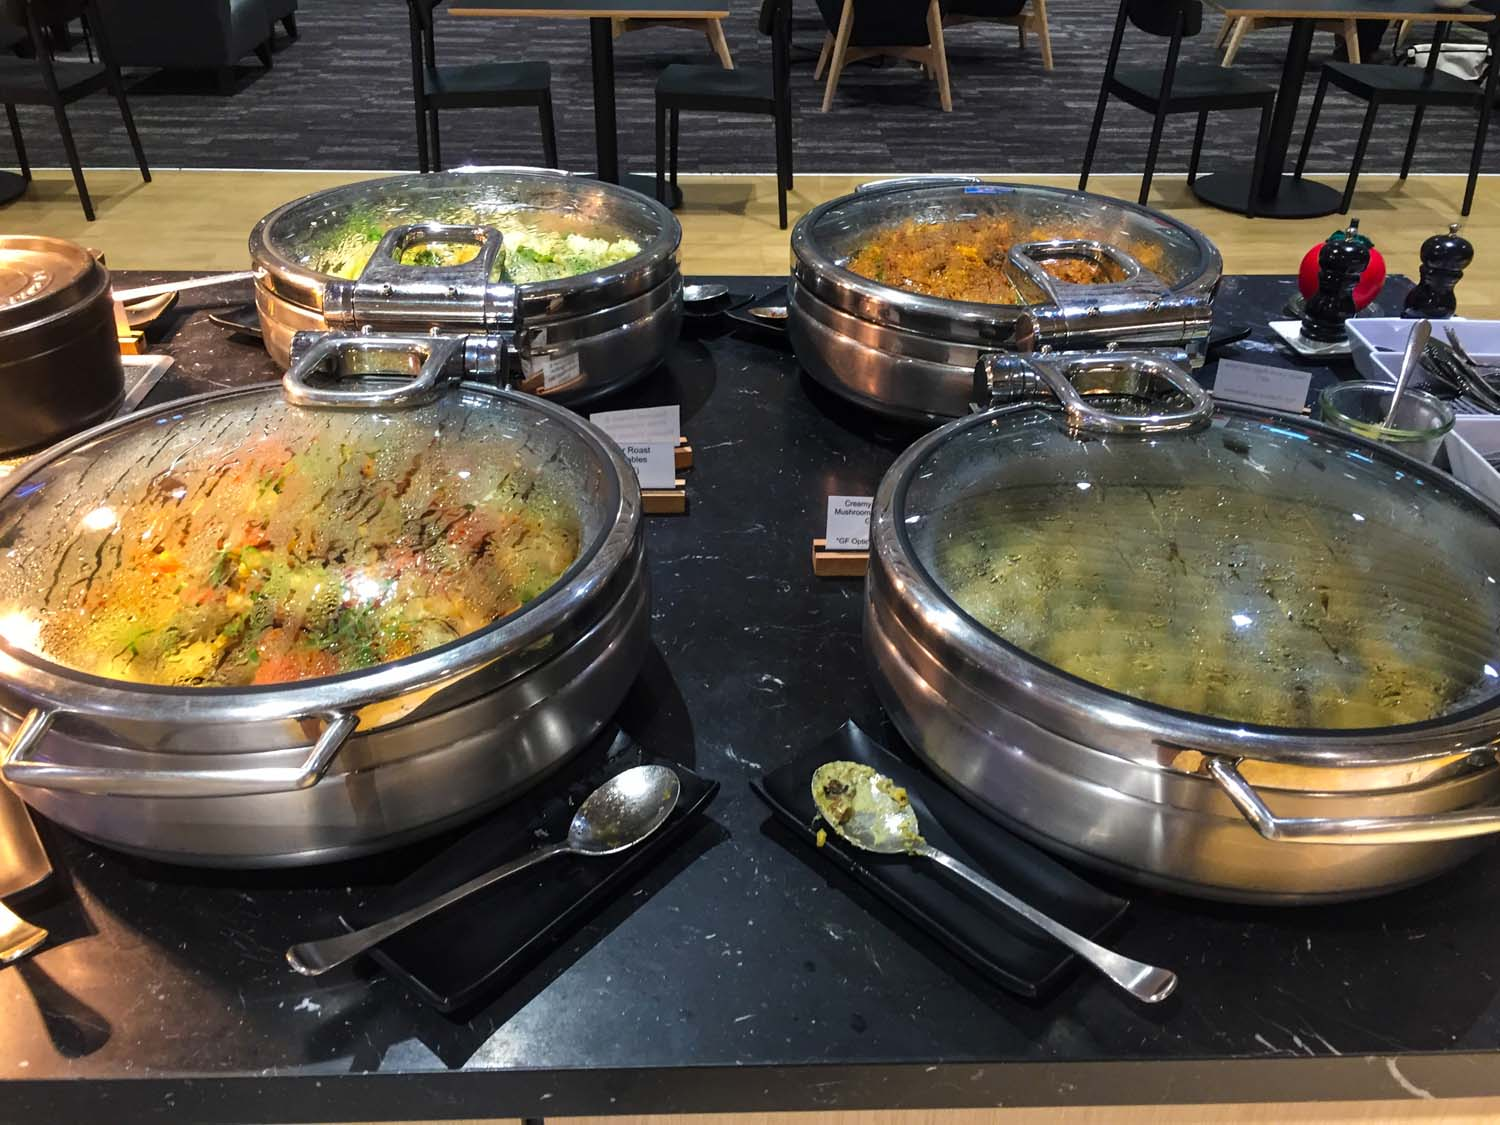 Strata Lounge auckland airport - food